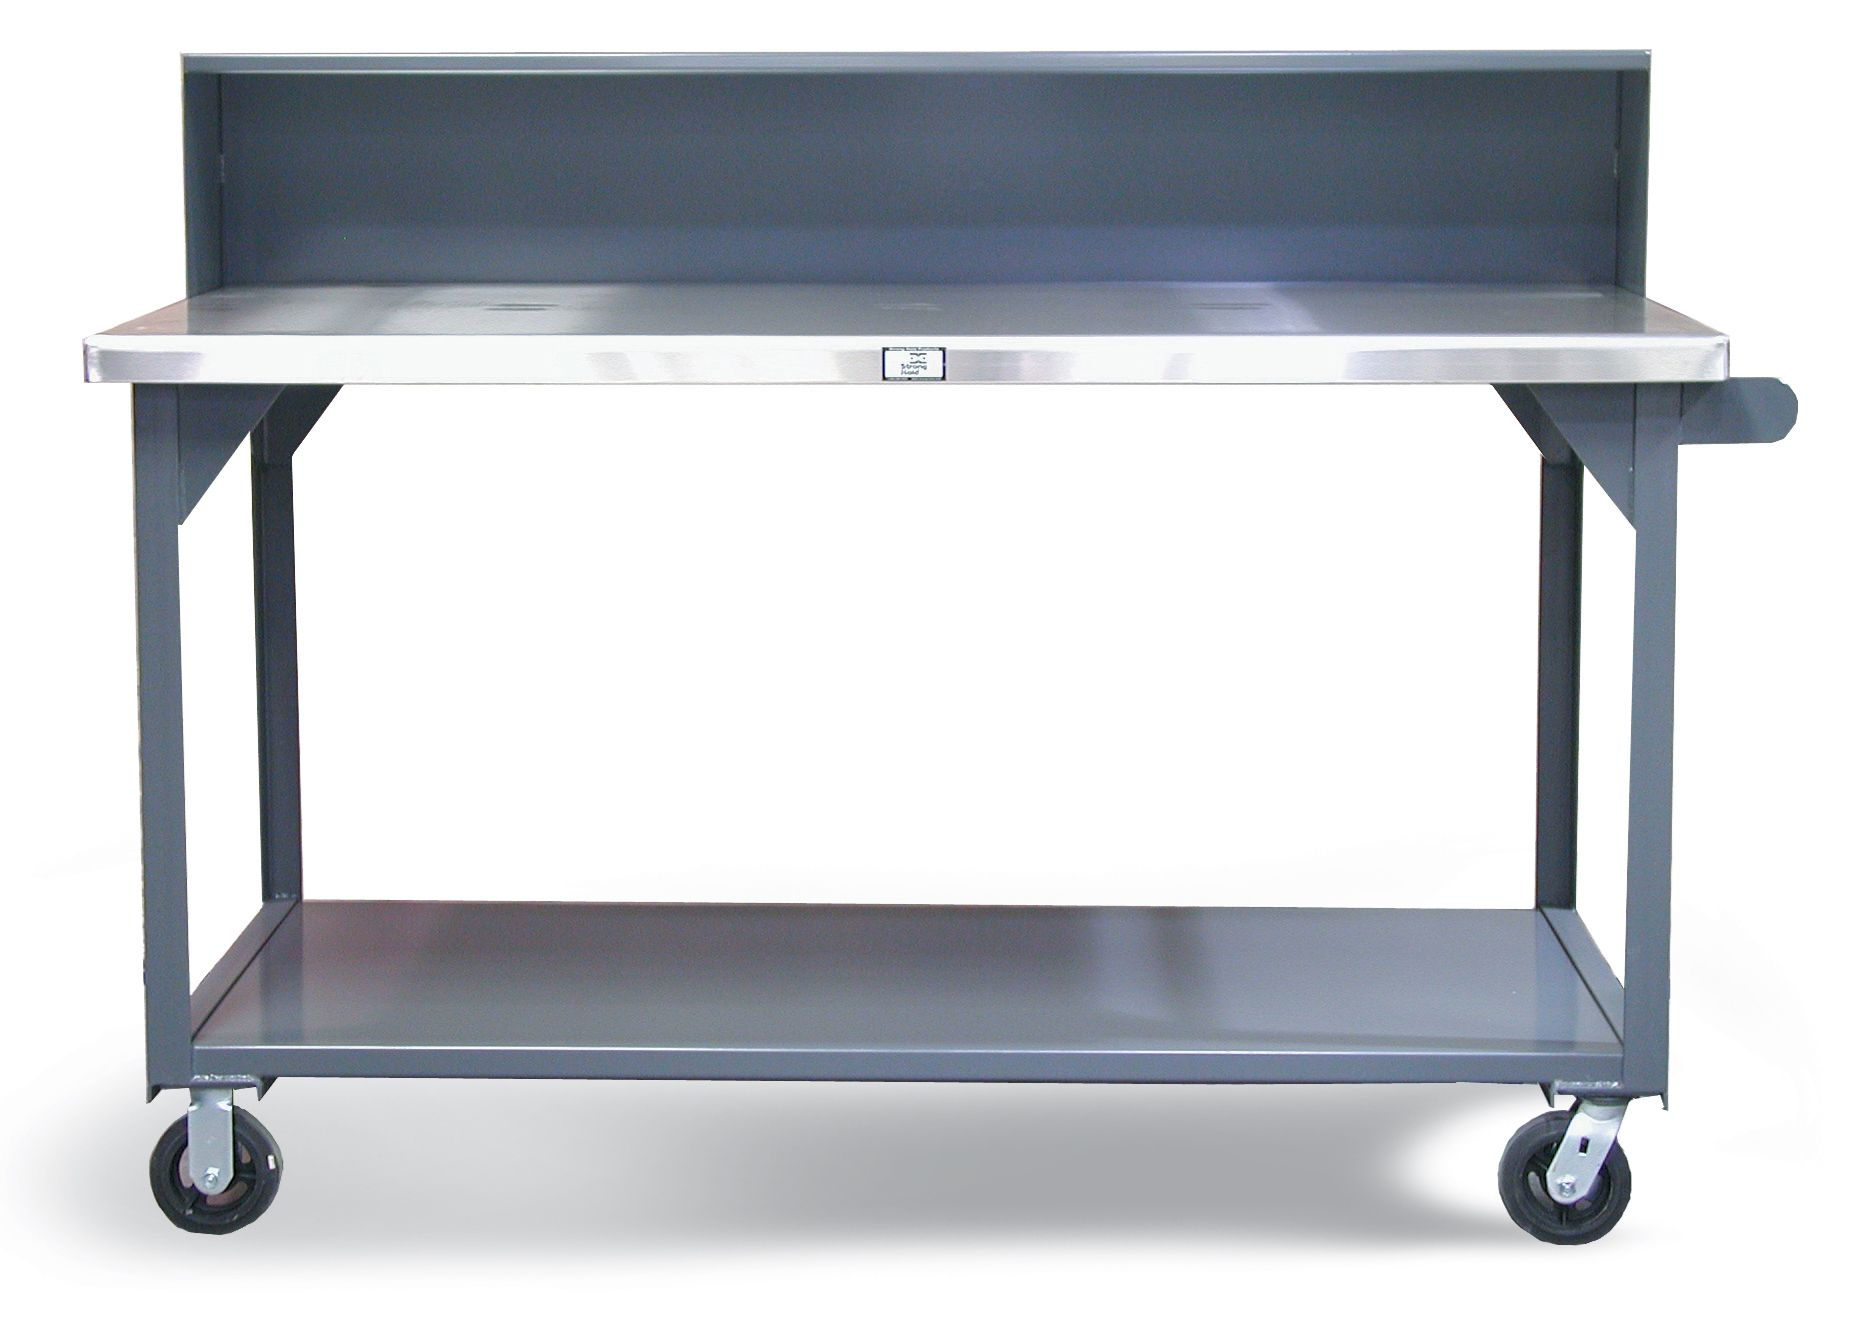 Strong Hold Products Stainless Steel Cabinets Stainless Steel Table Stainless Steel